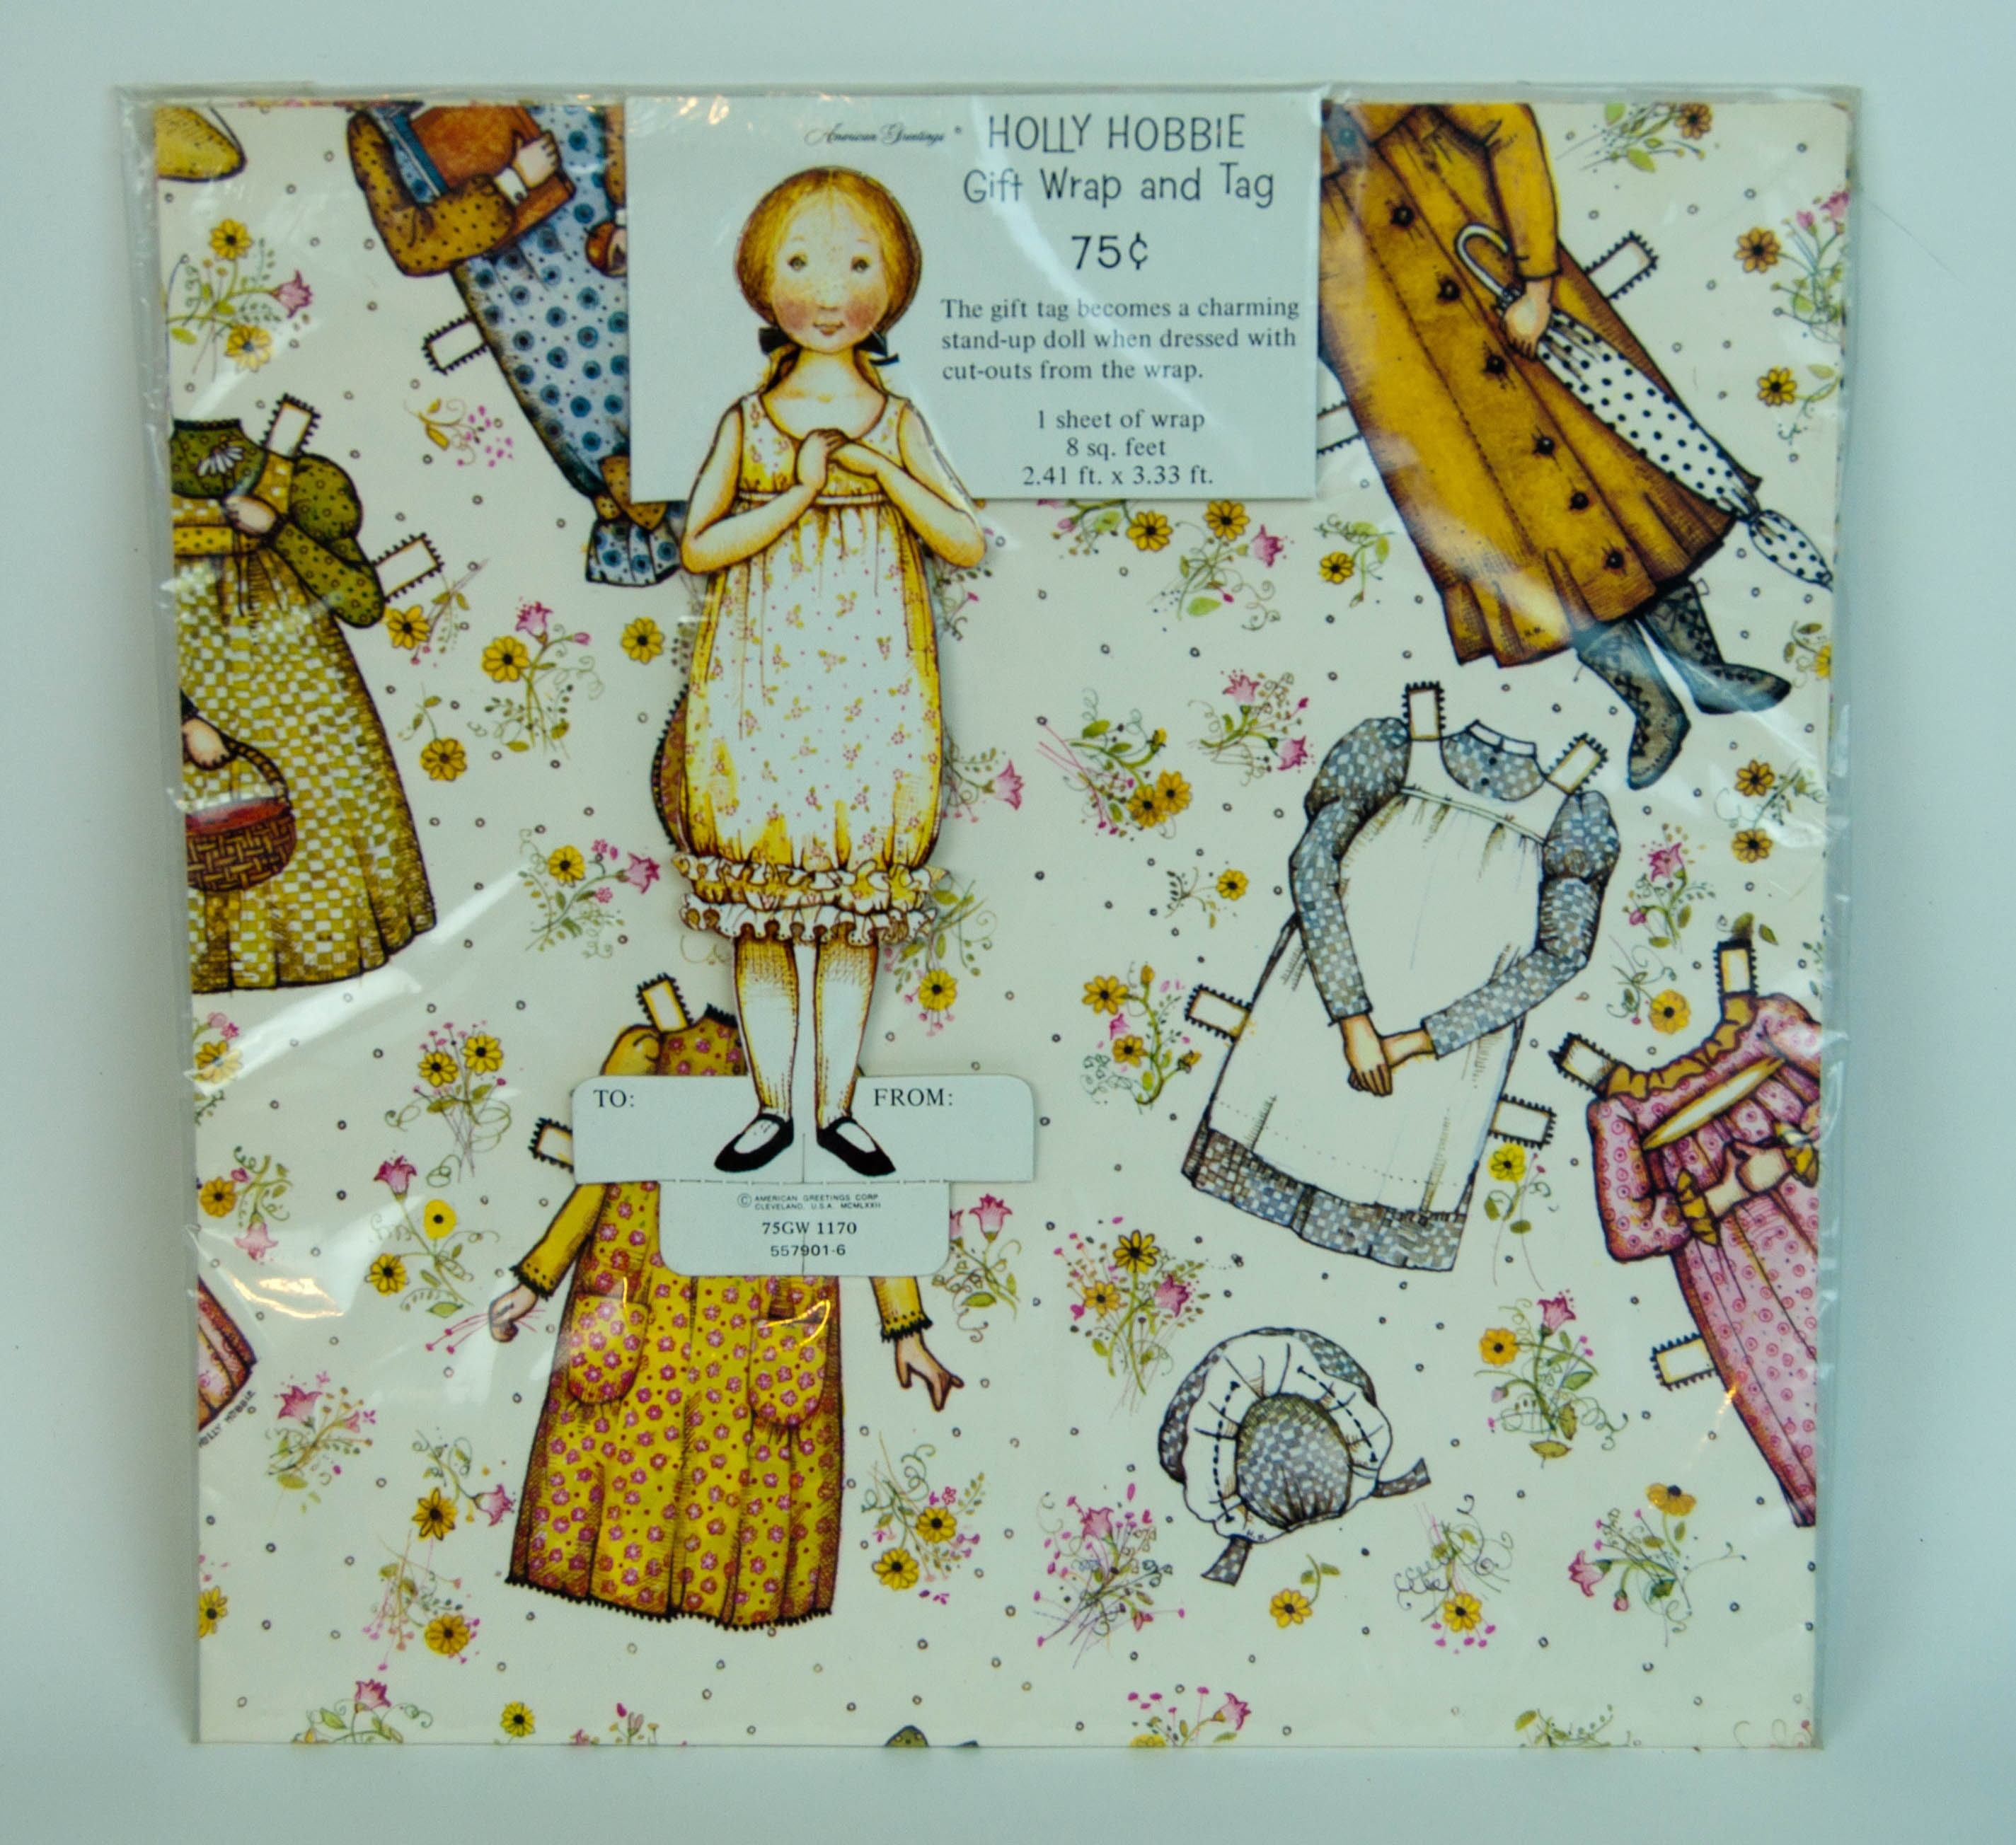 1972 Holly Hobbie Paper Doll Gift Wrap Tag Pack American Etsy